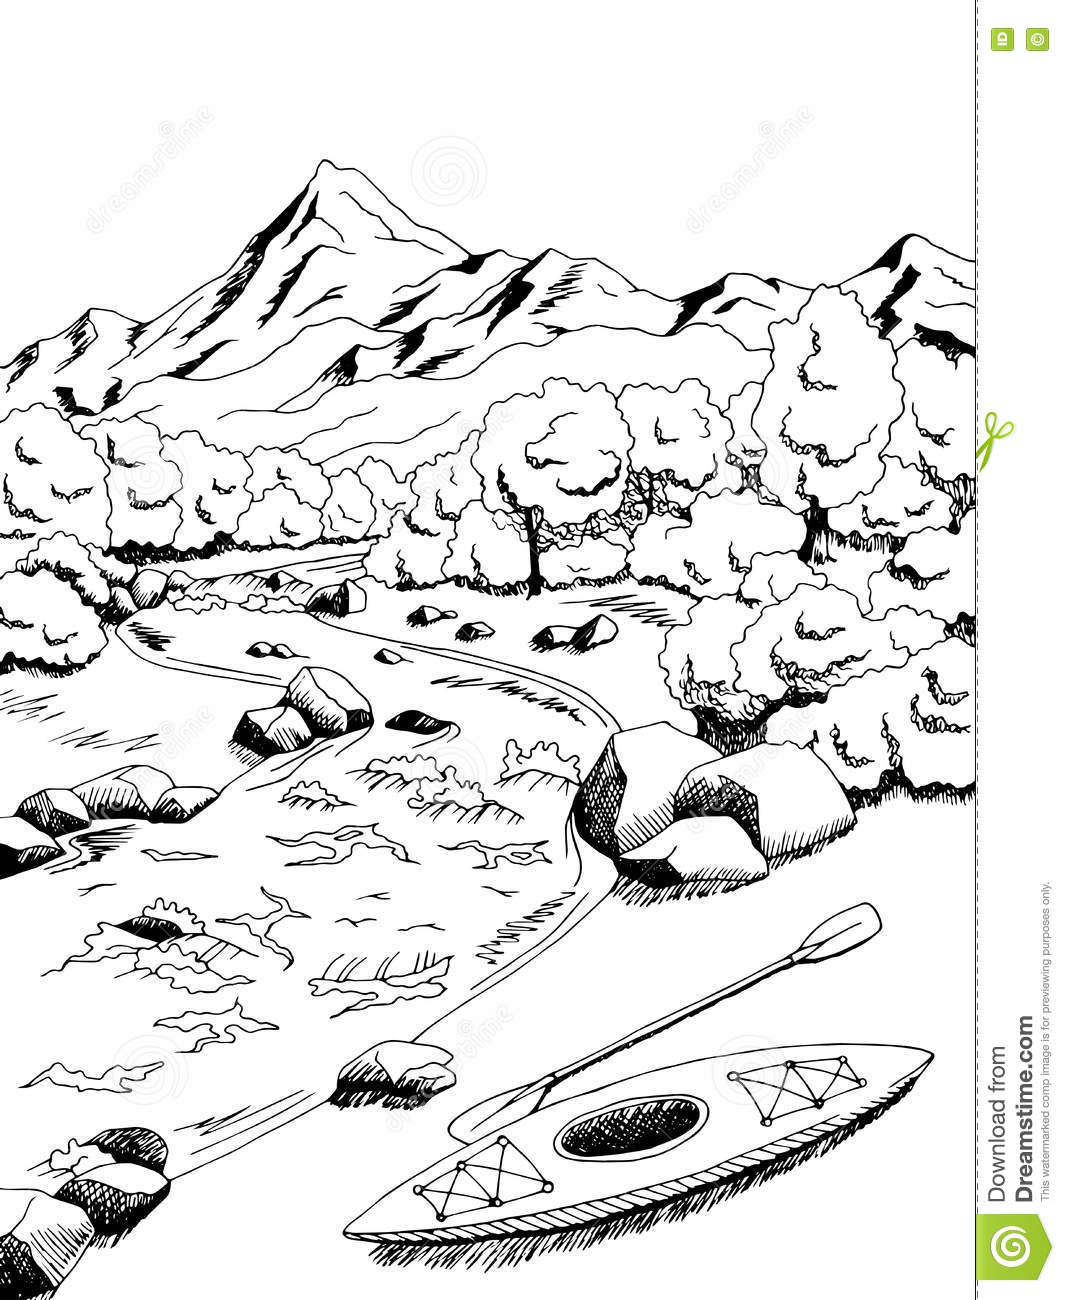 Line Drawing River : Mountain river graphic art black white landscape sketch